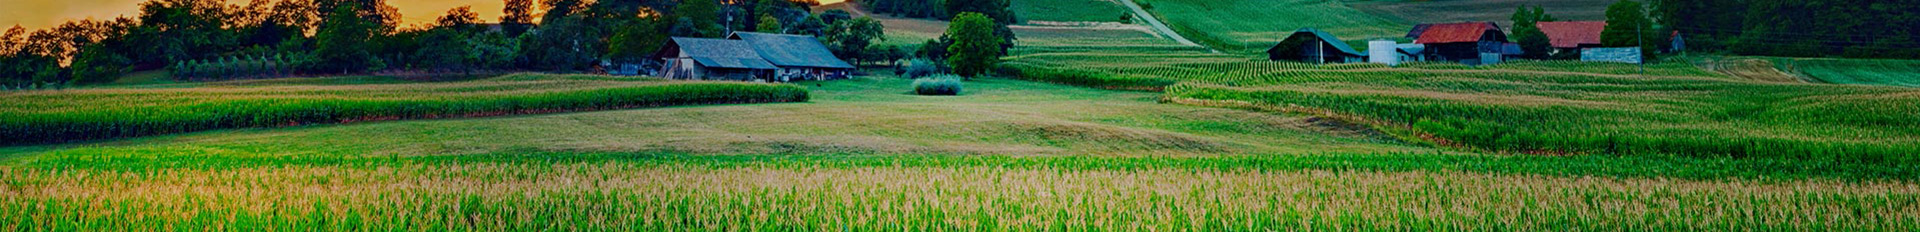 Resources | Knapp-Johnson-Harris Funeral Home